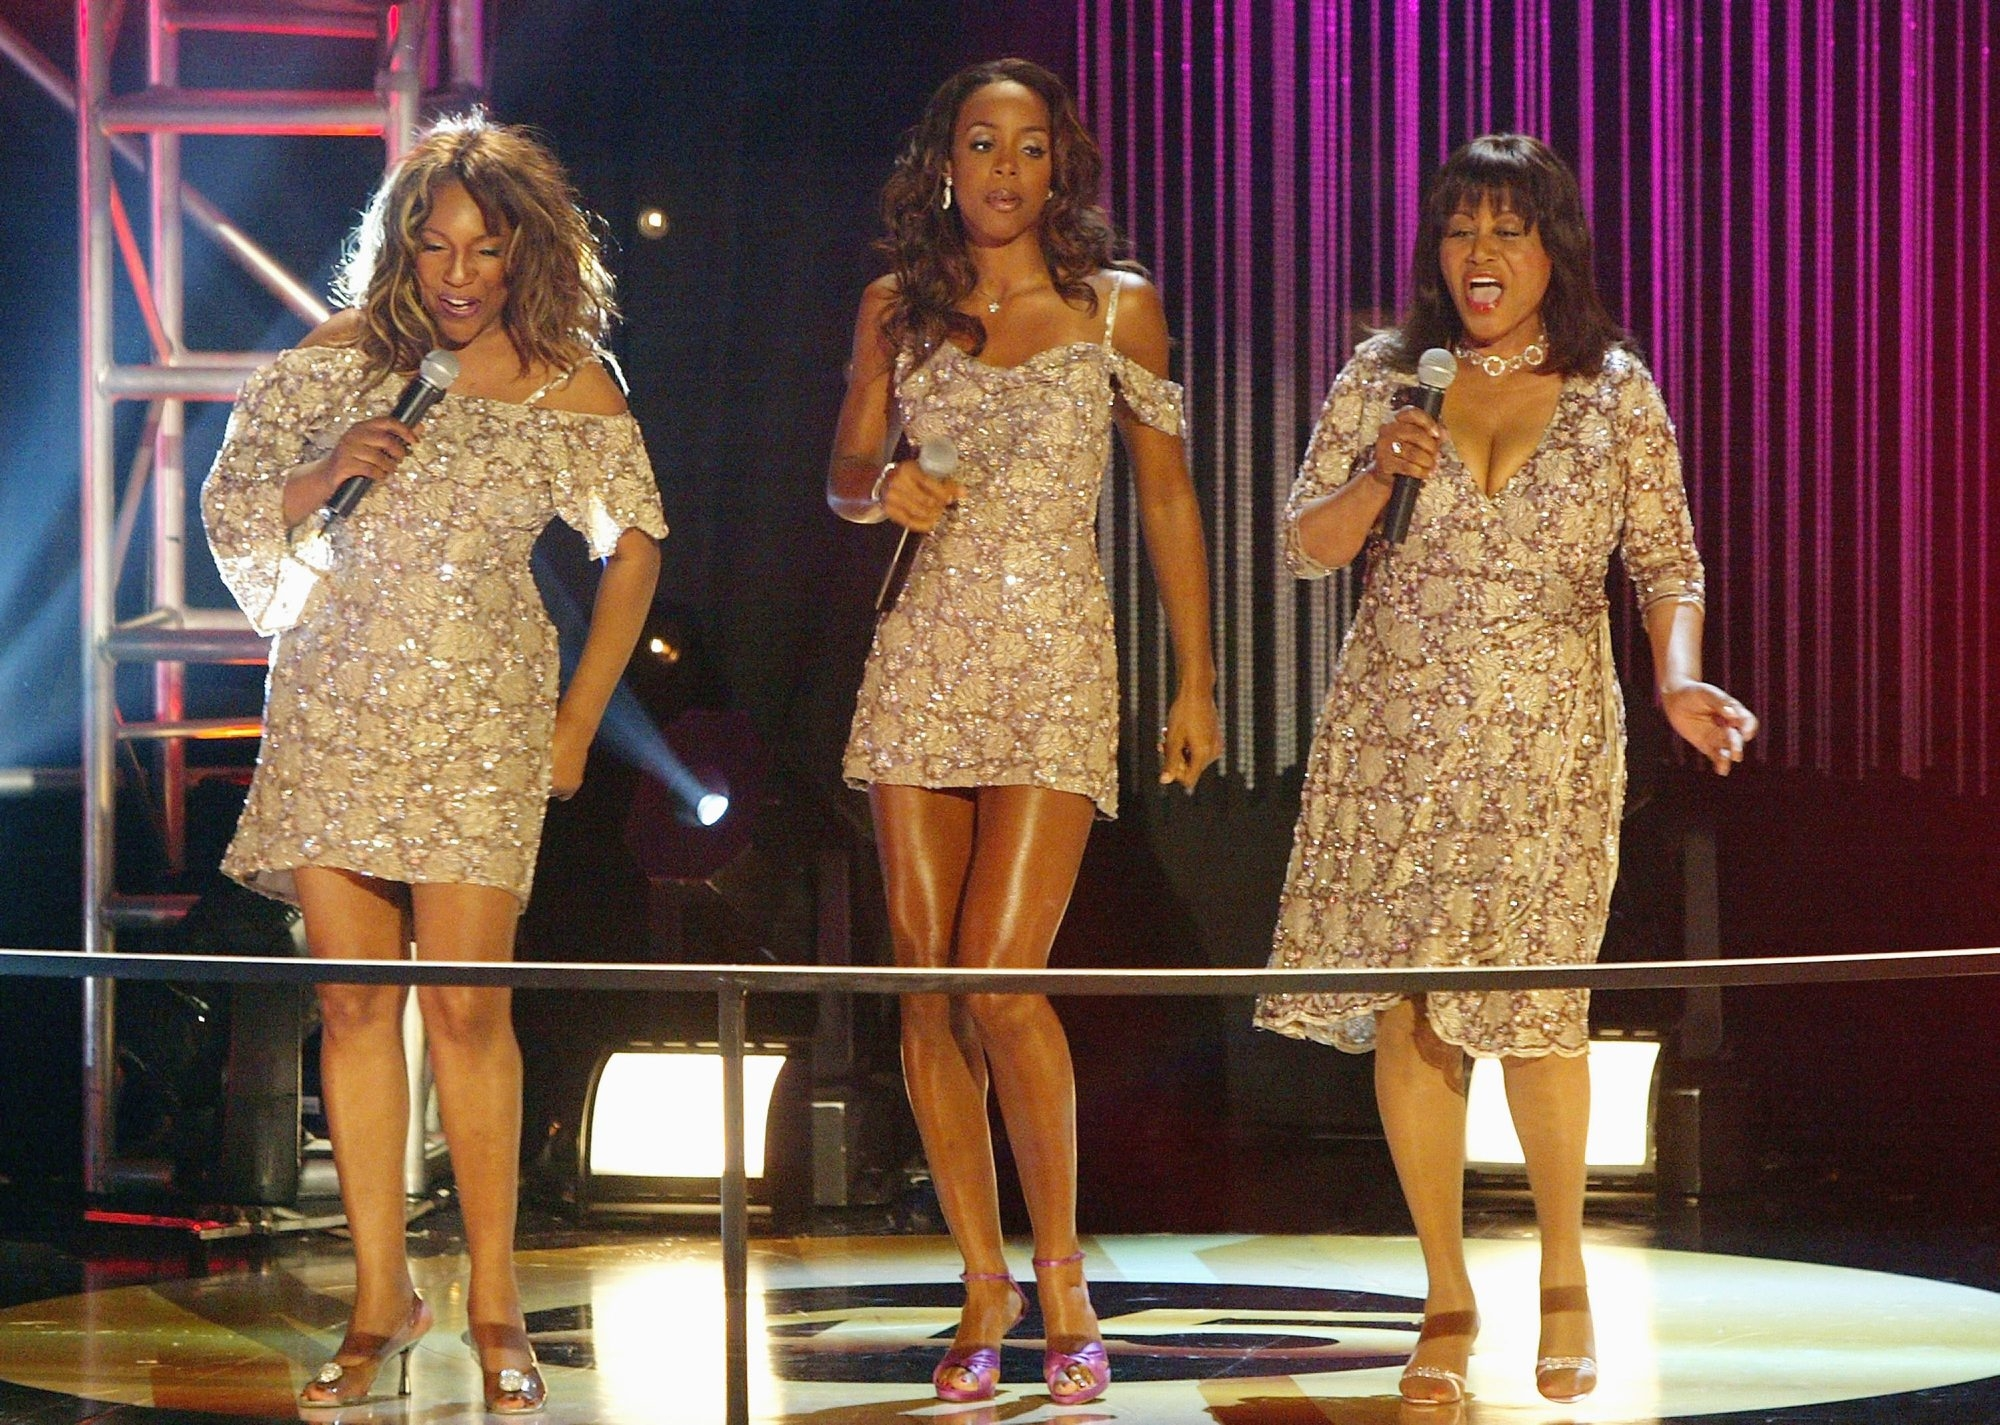 Mary Wilson, with her strong, soulful voice, put her own stamp on the Supremes' songs Saturday in Diamond Room.